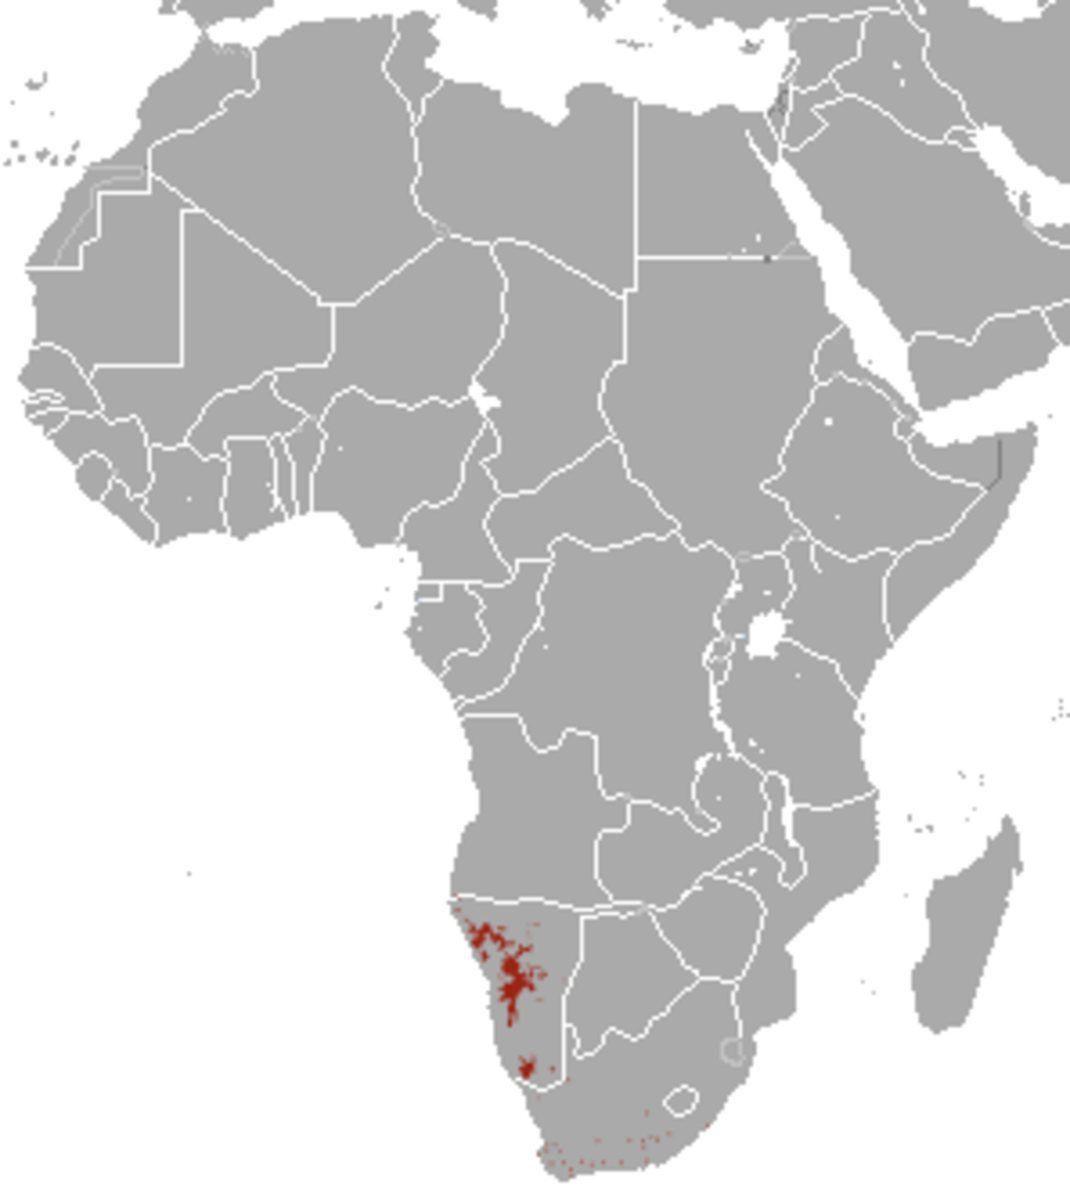 The range of the mountain zebra is much more restricted.